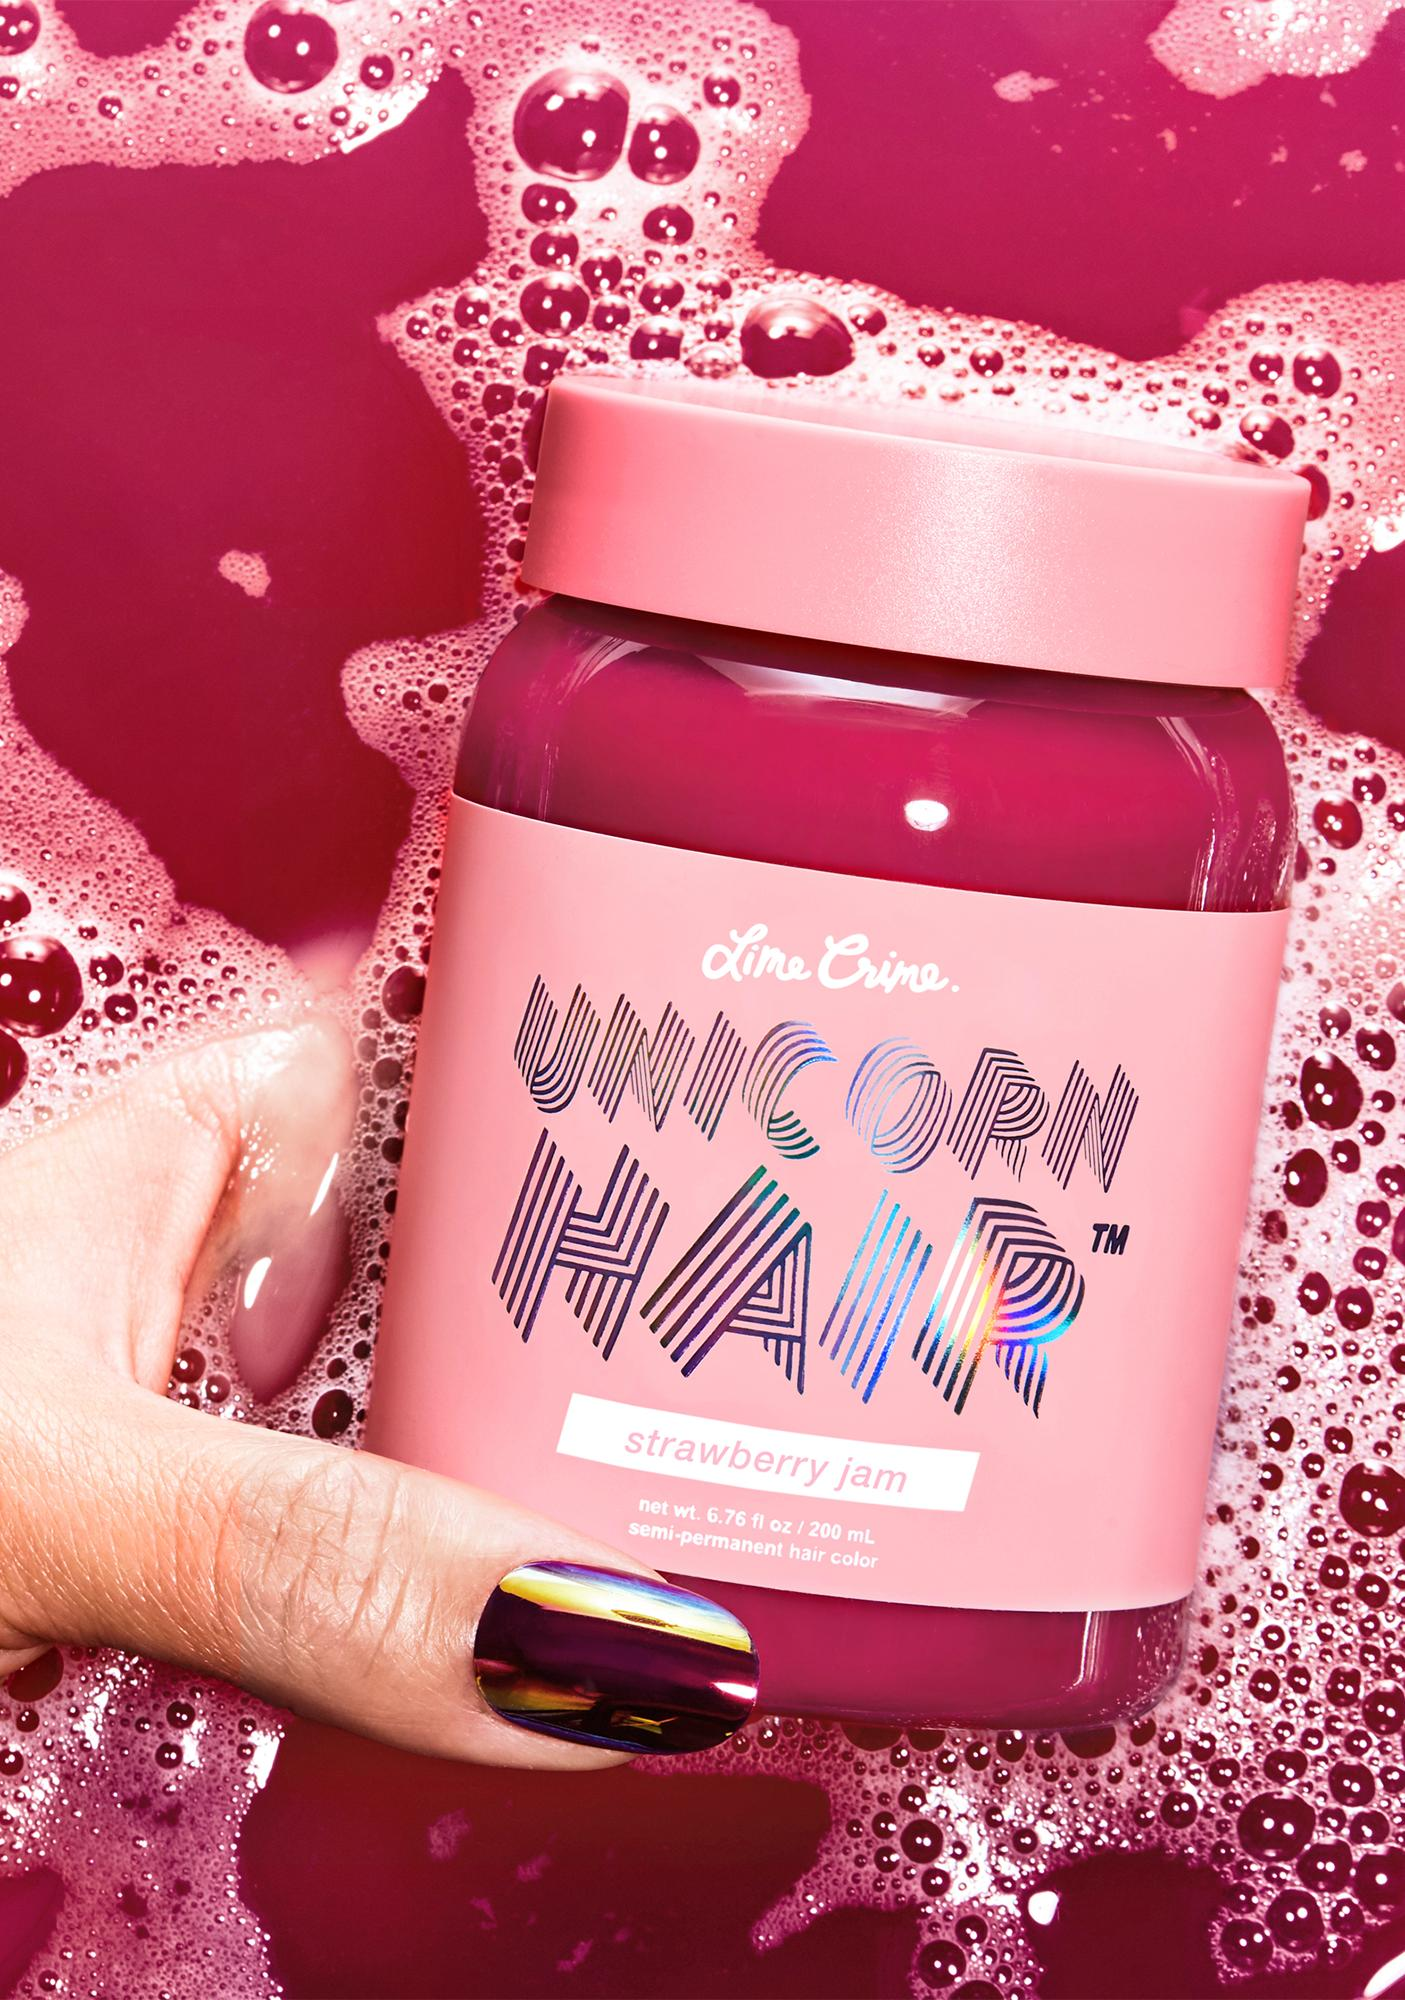 Lime Crime Strawberry Jam Unicorn Hair Dye